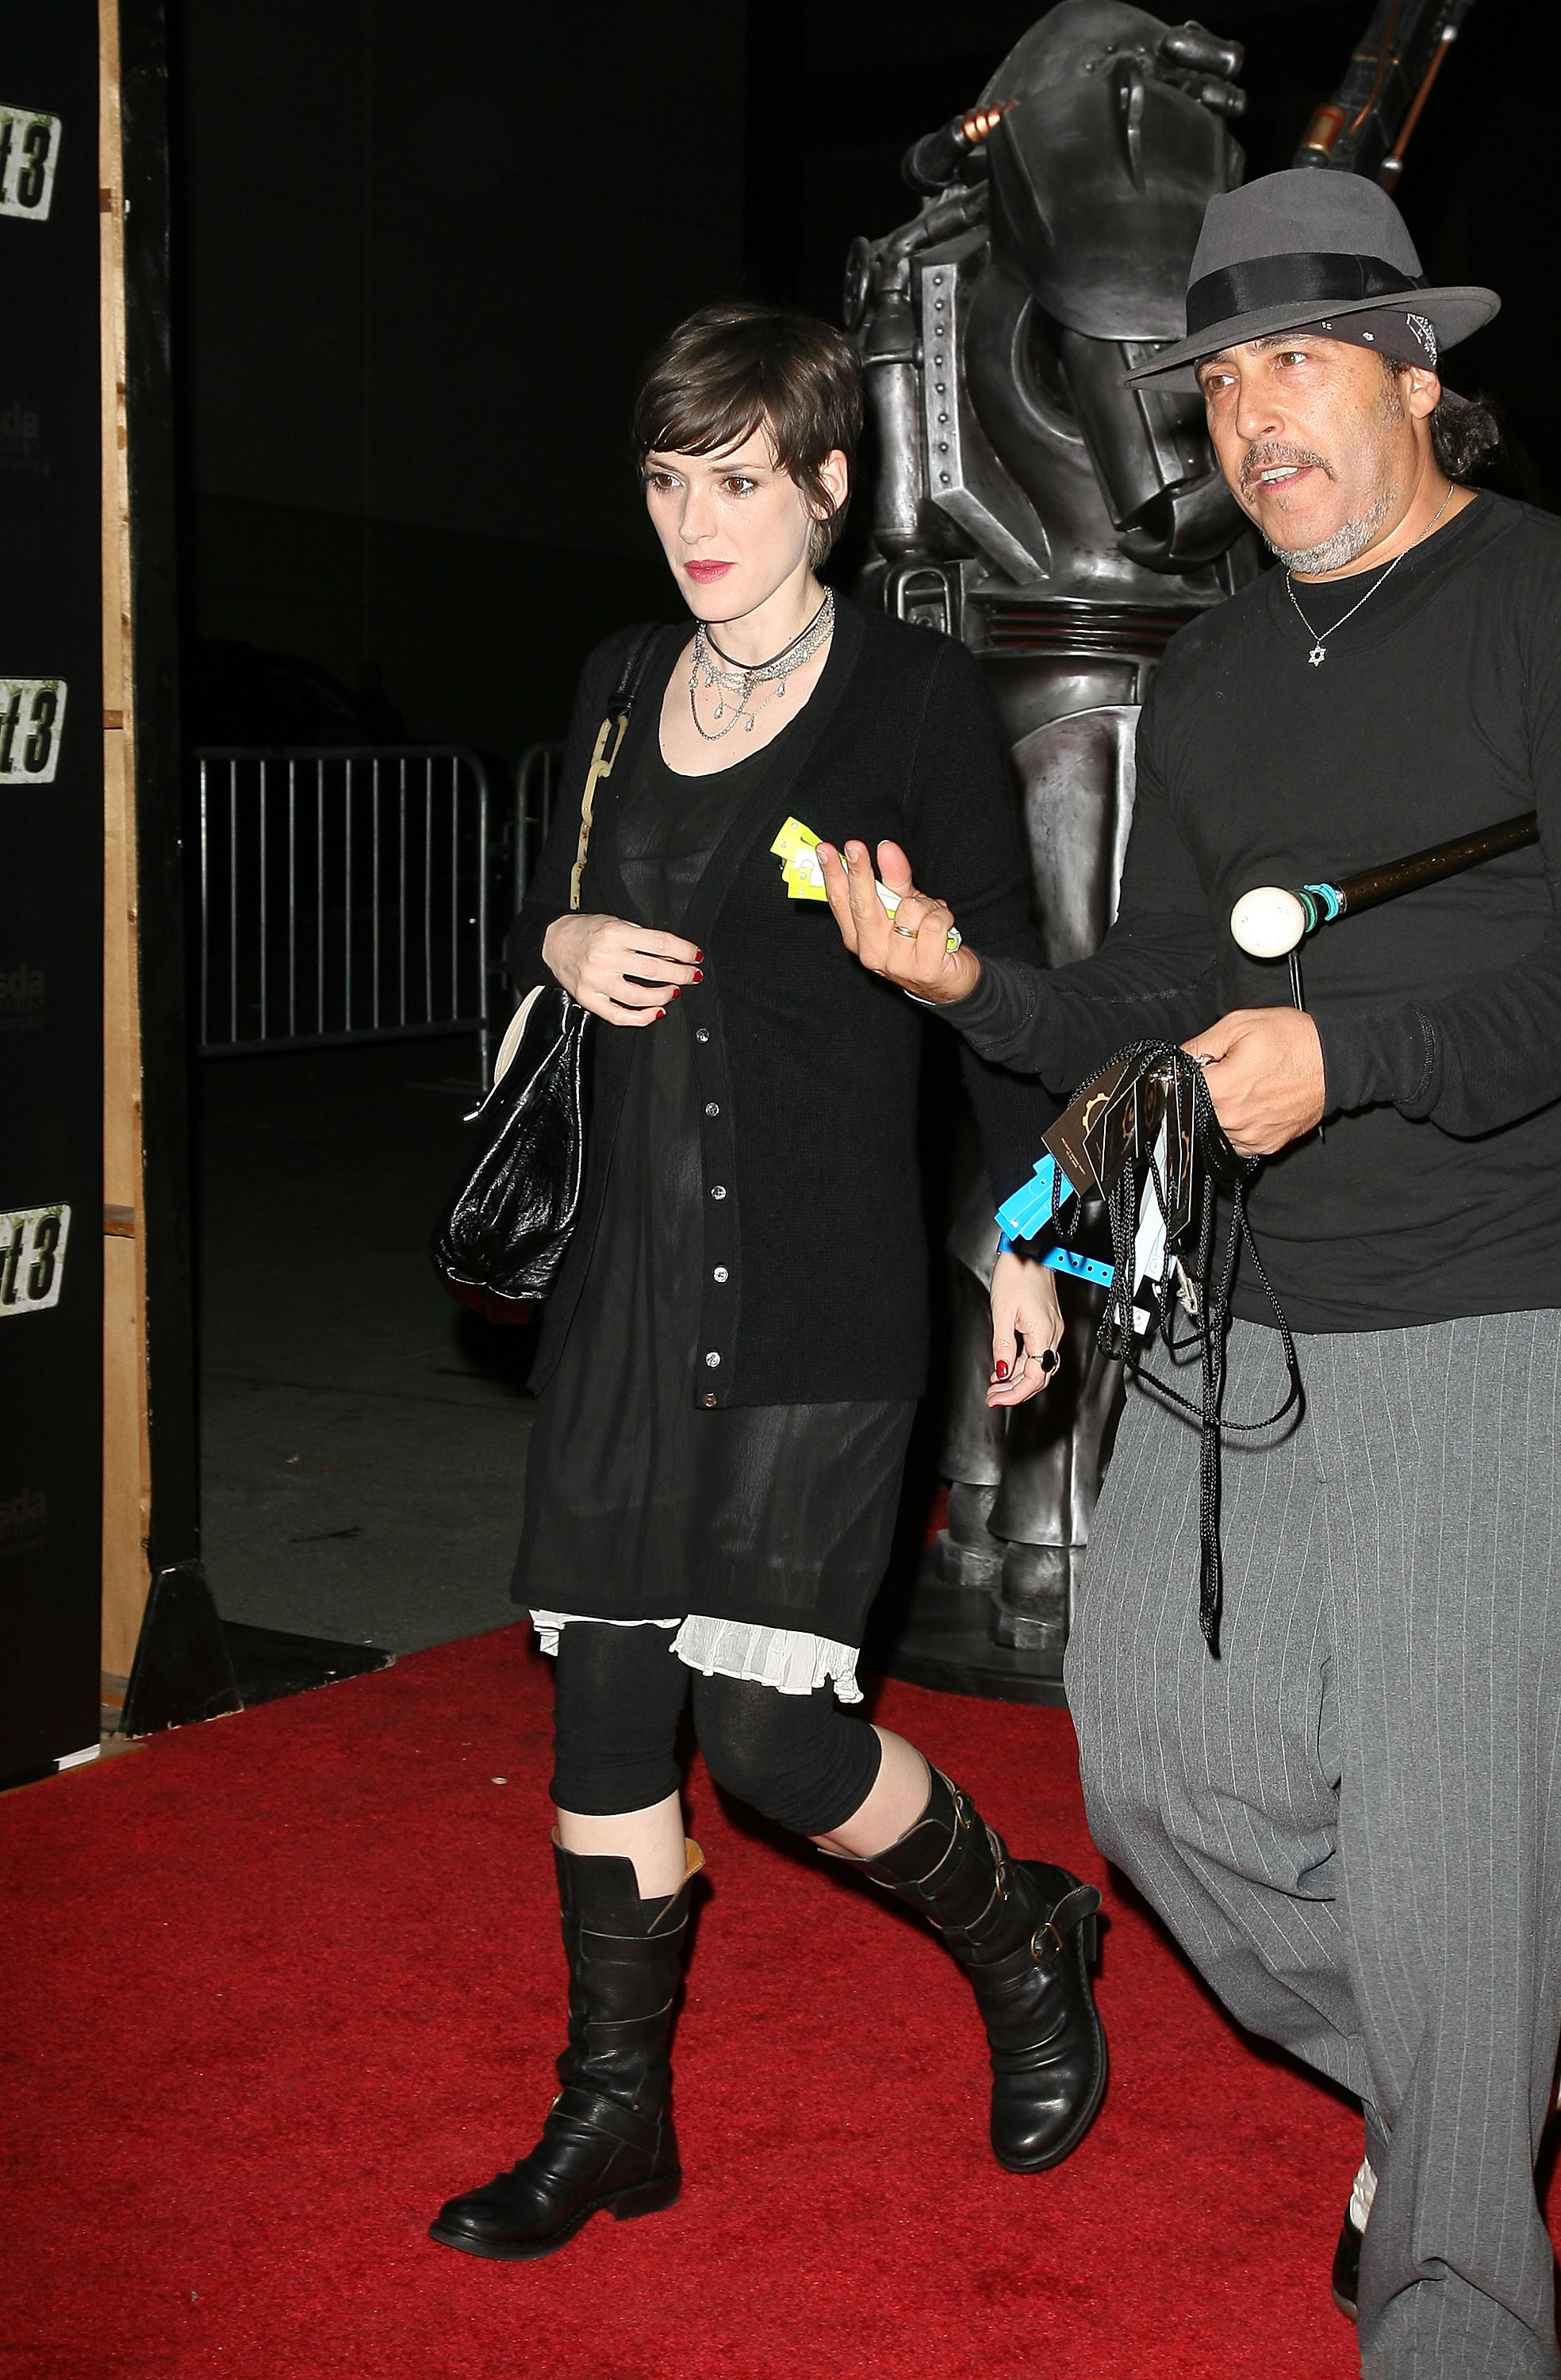 55568_Celebutopia-Winona_Ryder-Launch_Party_for_Fallout_3_videogame-03_122_1074lo.jpg